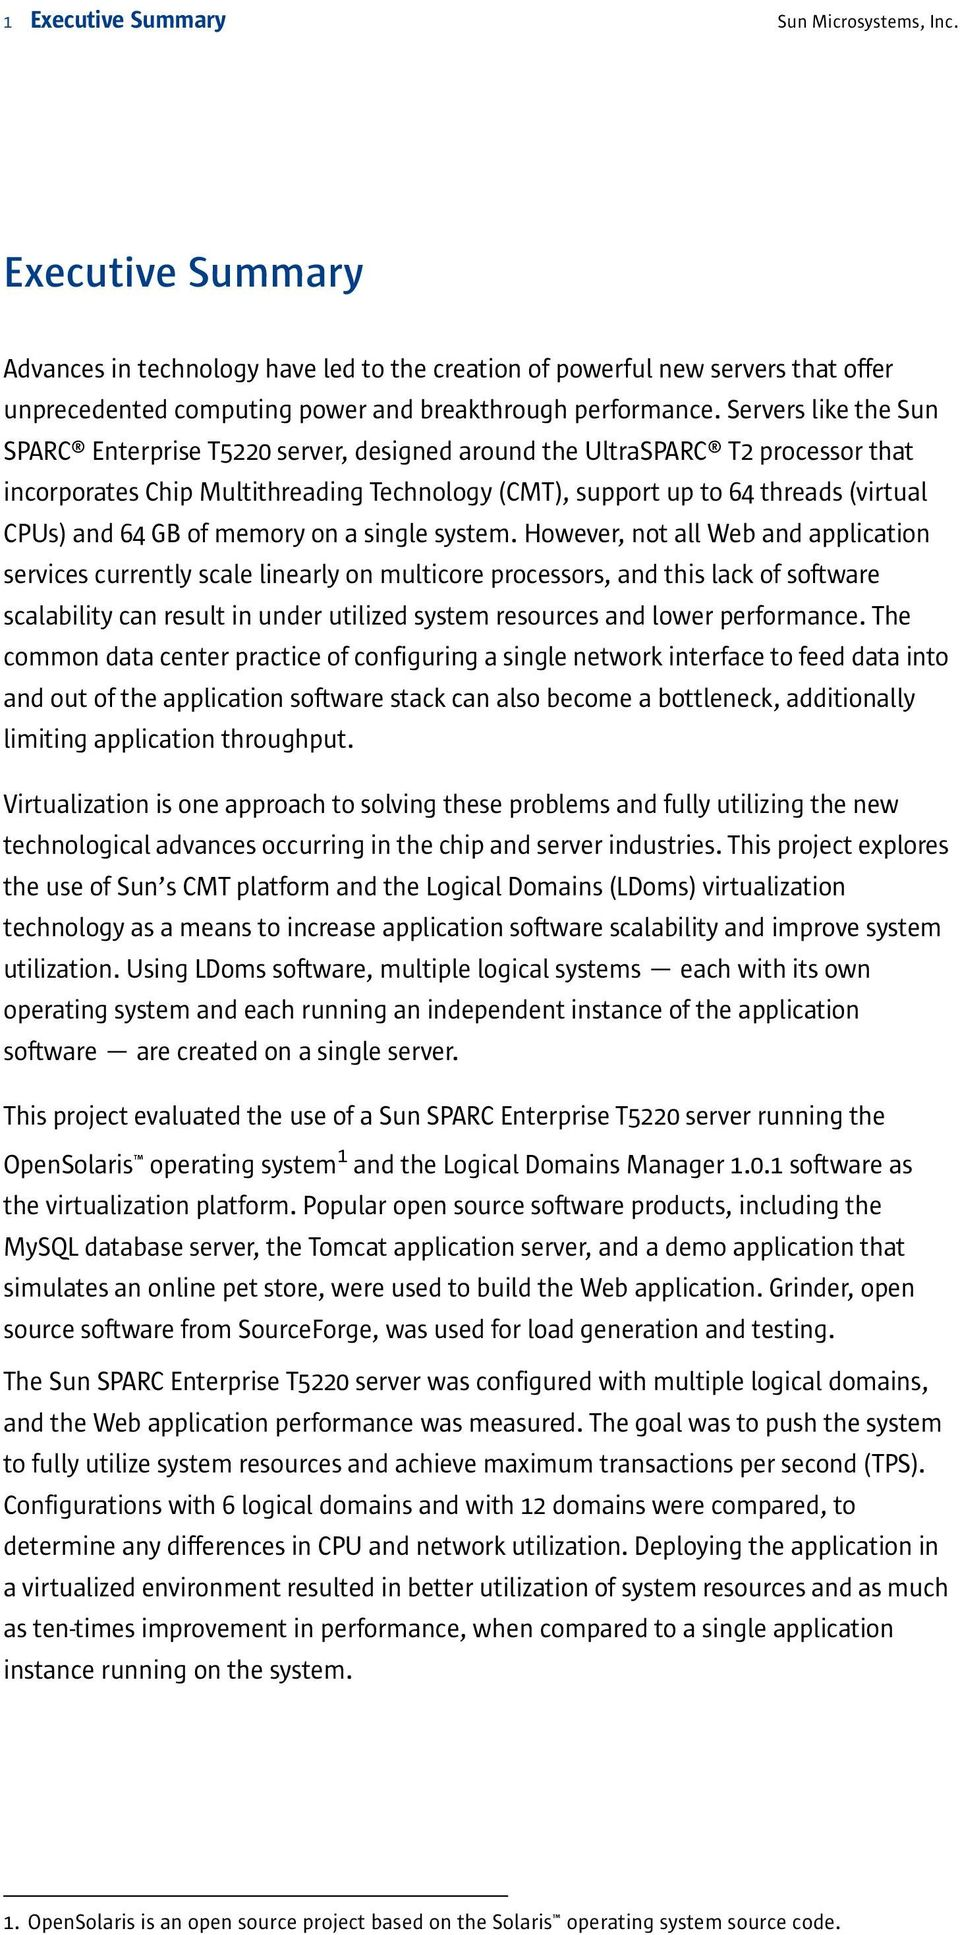 s like the Sun SPARC Enterprise T5220 server, designed around the UltraSPARC T2 processor that incorporates Chip Multithreading Technology (CMT), support up to 64 threads (virtual CPUs) and 64 GB of